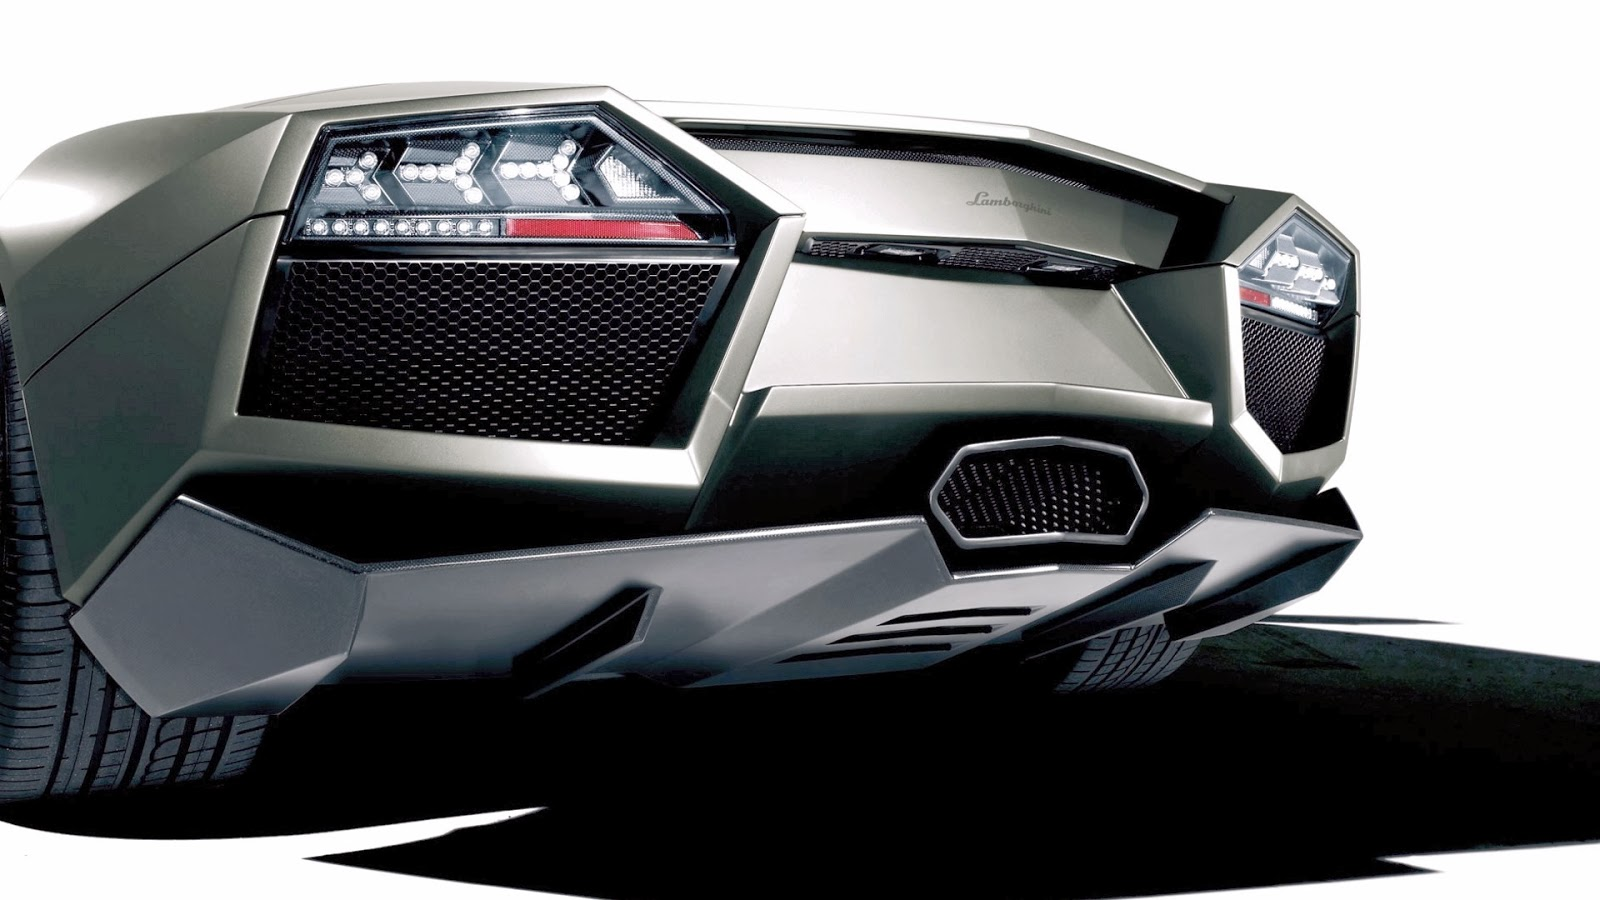 2014 Reviews Lamborghini Aventador Topspeed Acceleration